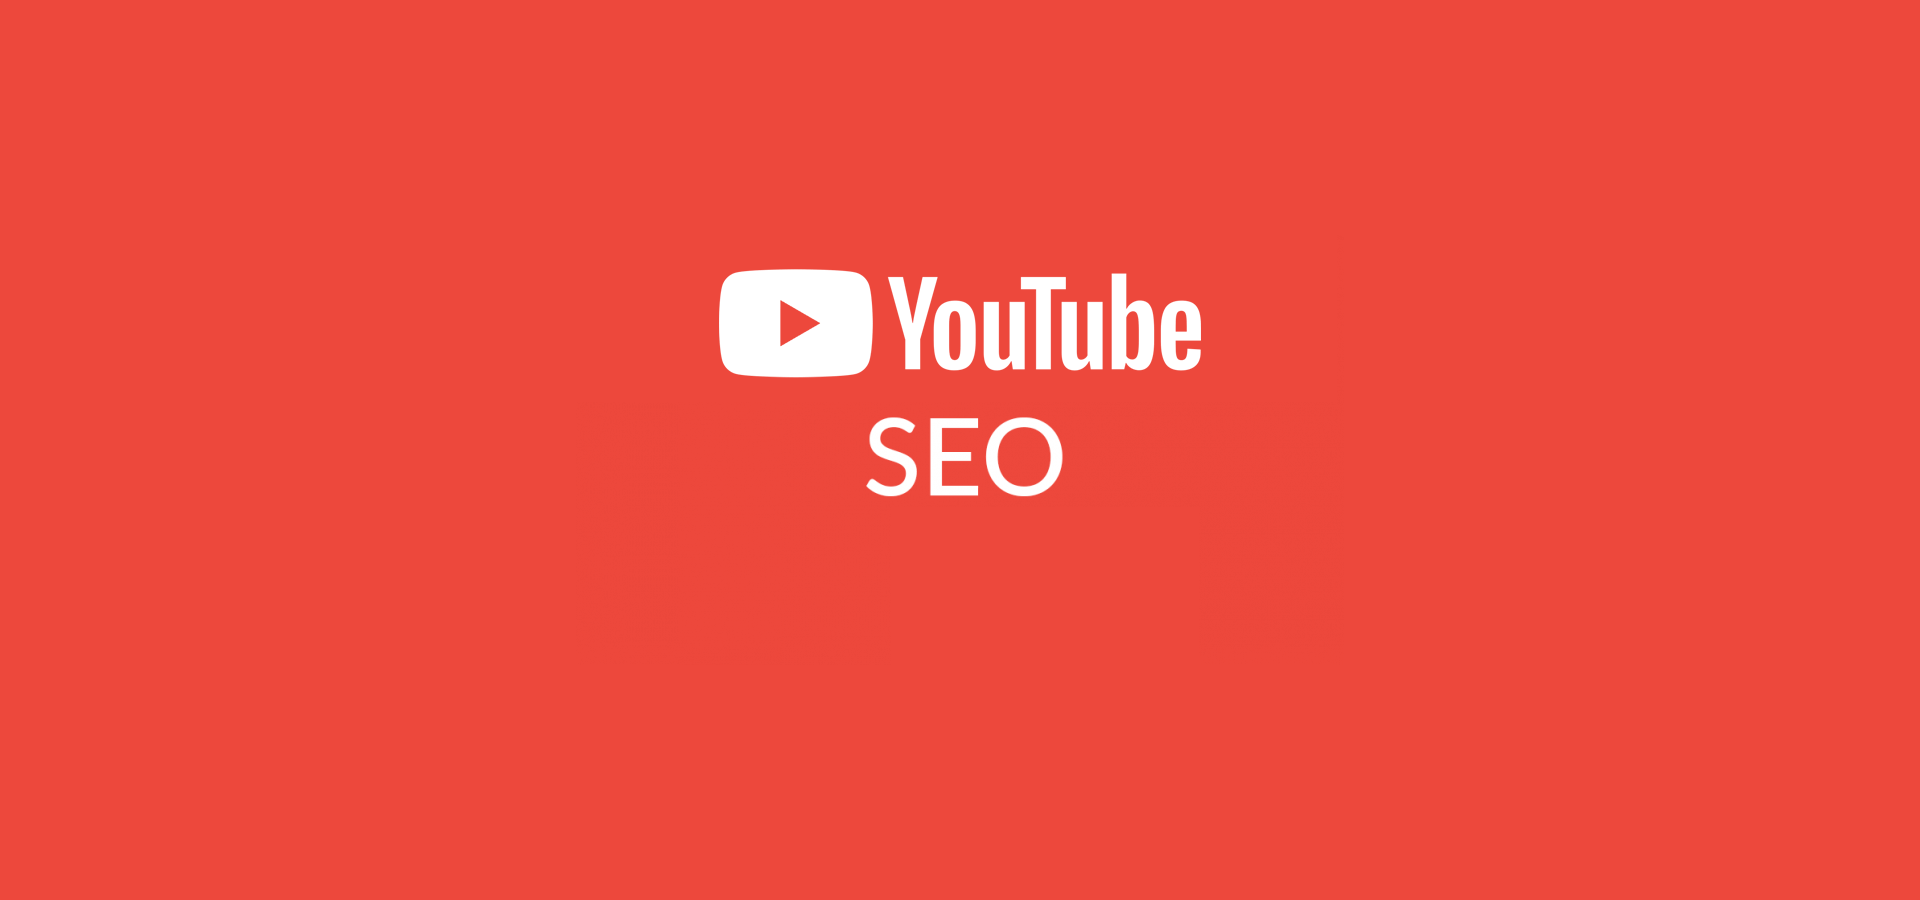 YouTube SEO Guide – Optimising Everything from Channels to Videos